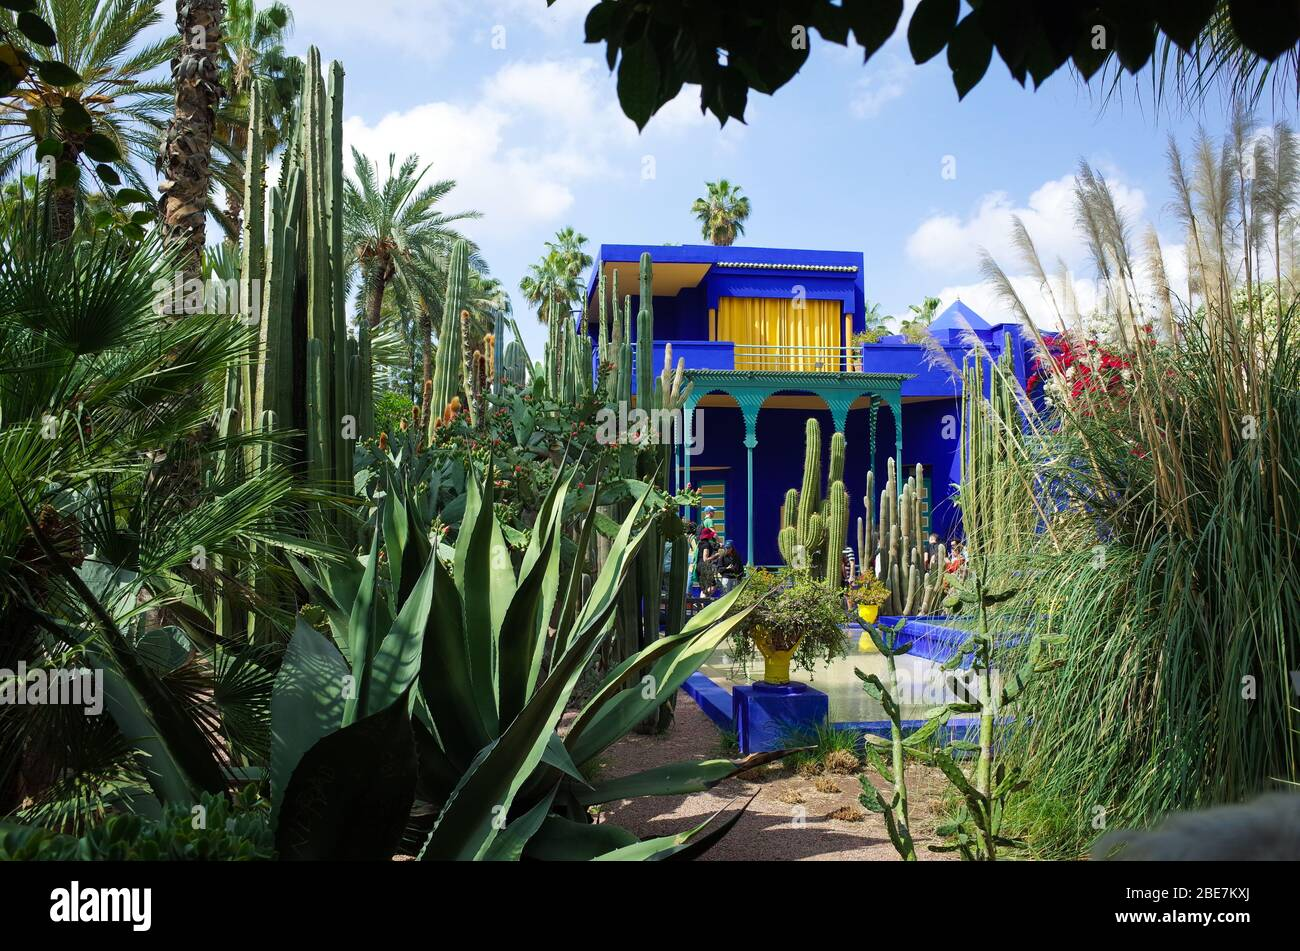 Travel in Morocco at YSL Museum, Blue house of Yves Saint Laurent Stock Photo